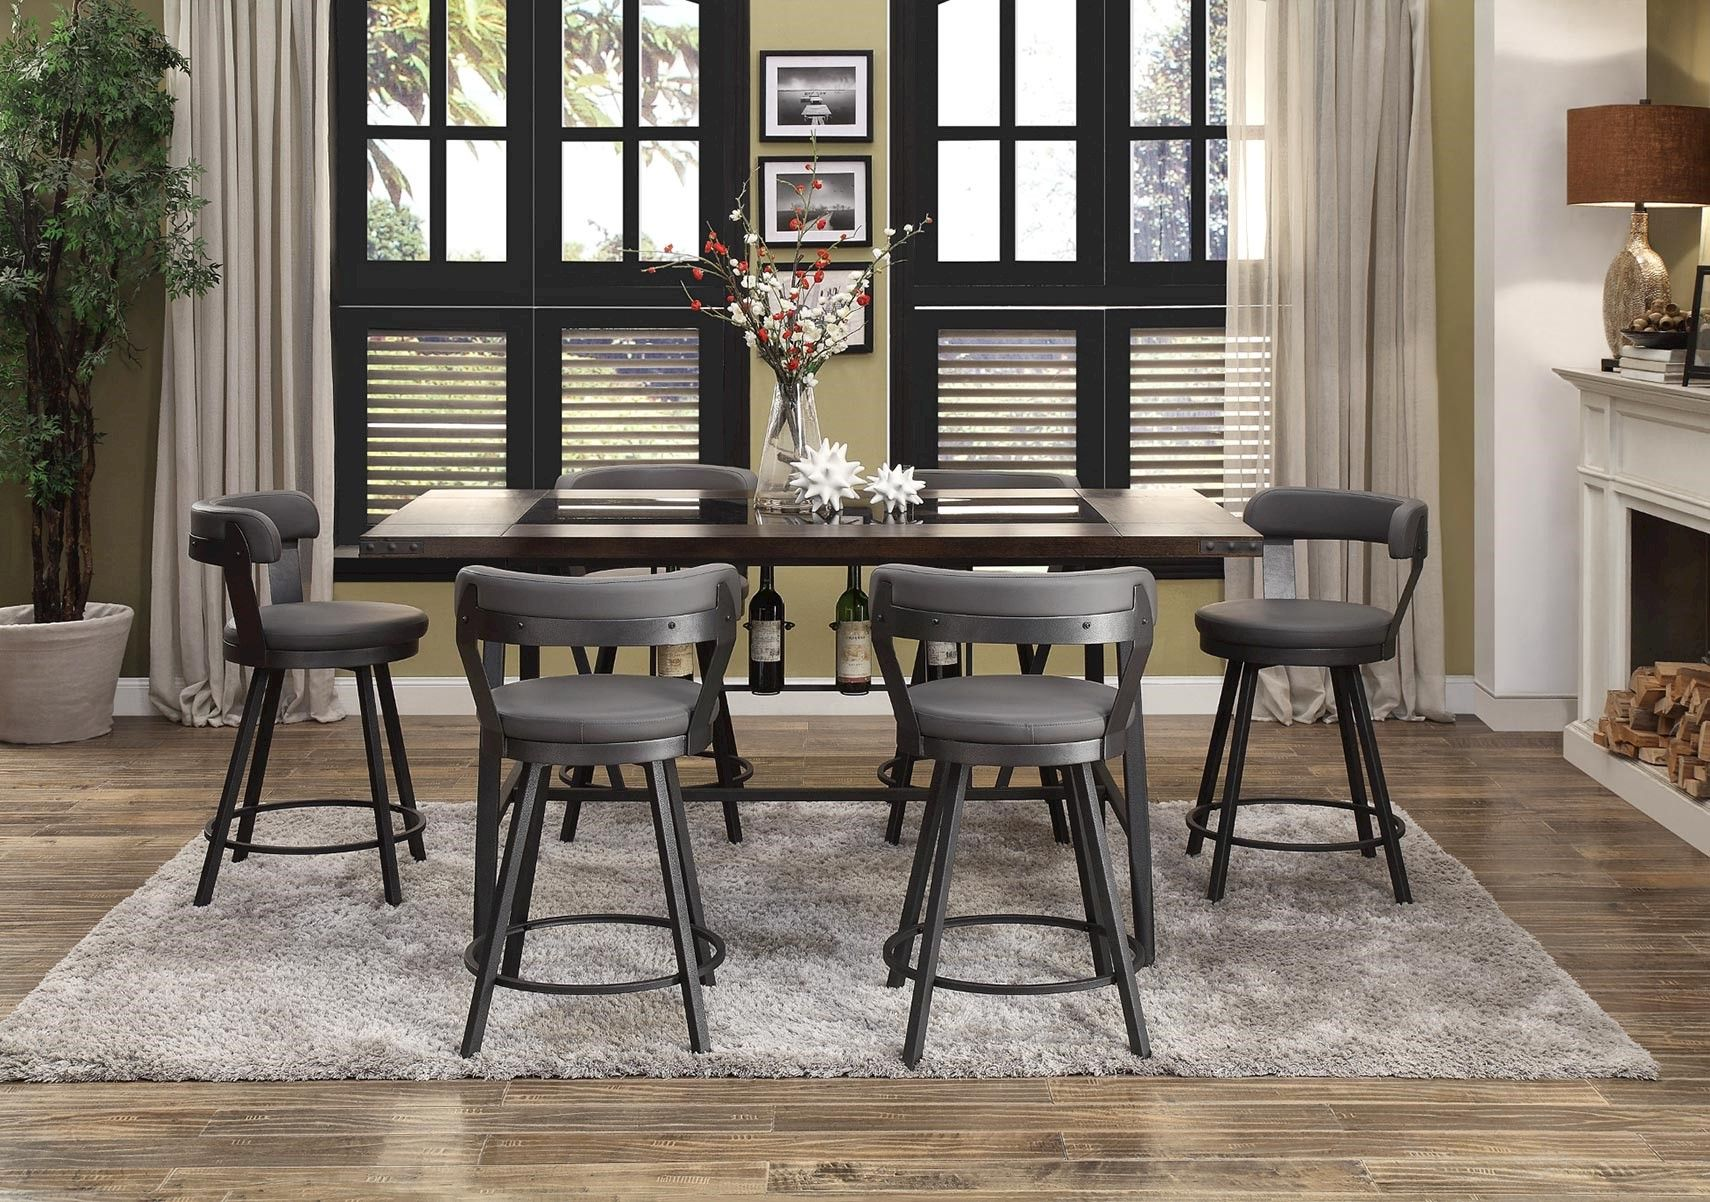 Lacks Dolores Gray 7 Pc Counter Height Dining Set Counter Height Dining Table Set Counter Height Dining Table Affordable Dining Room Sets